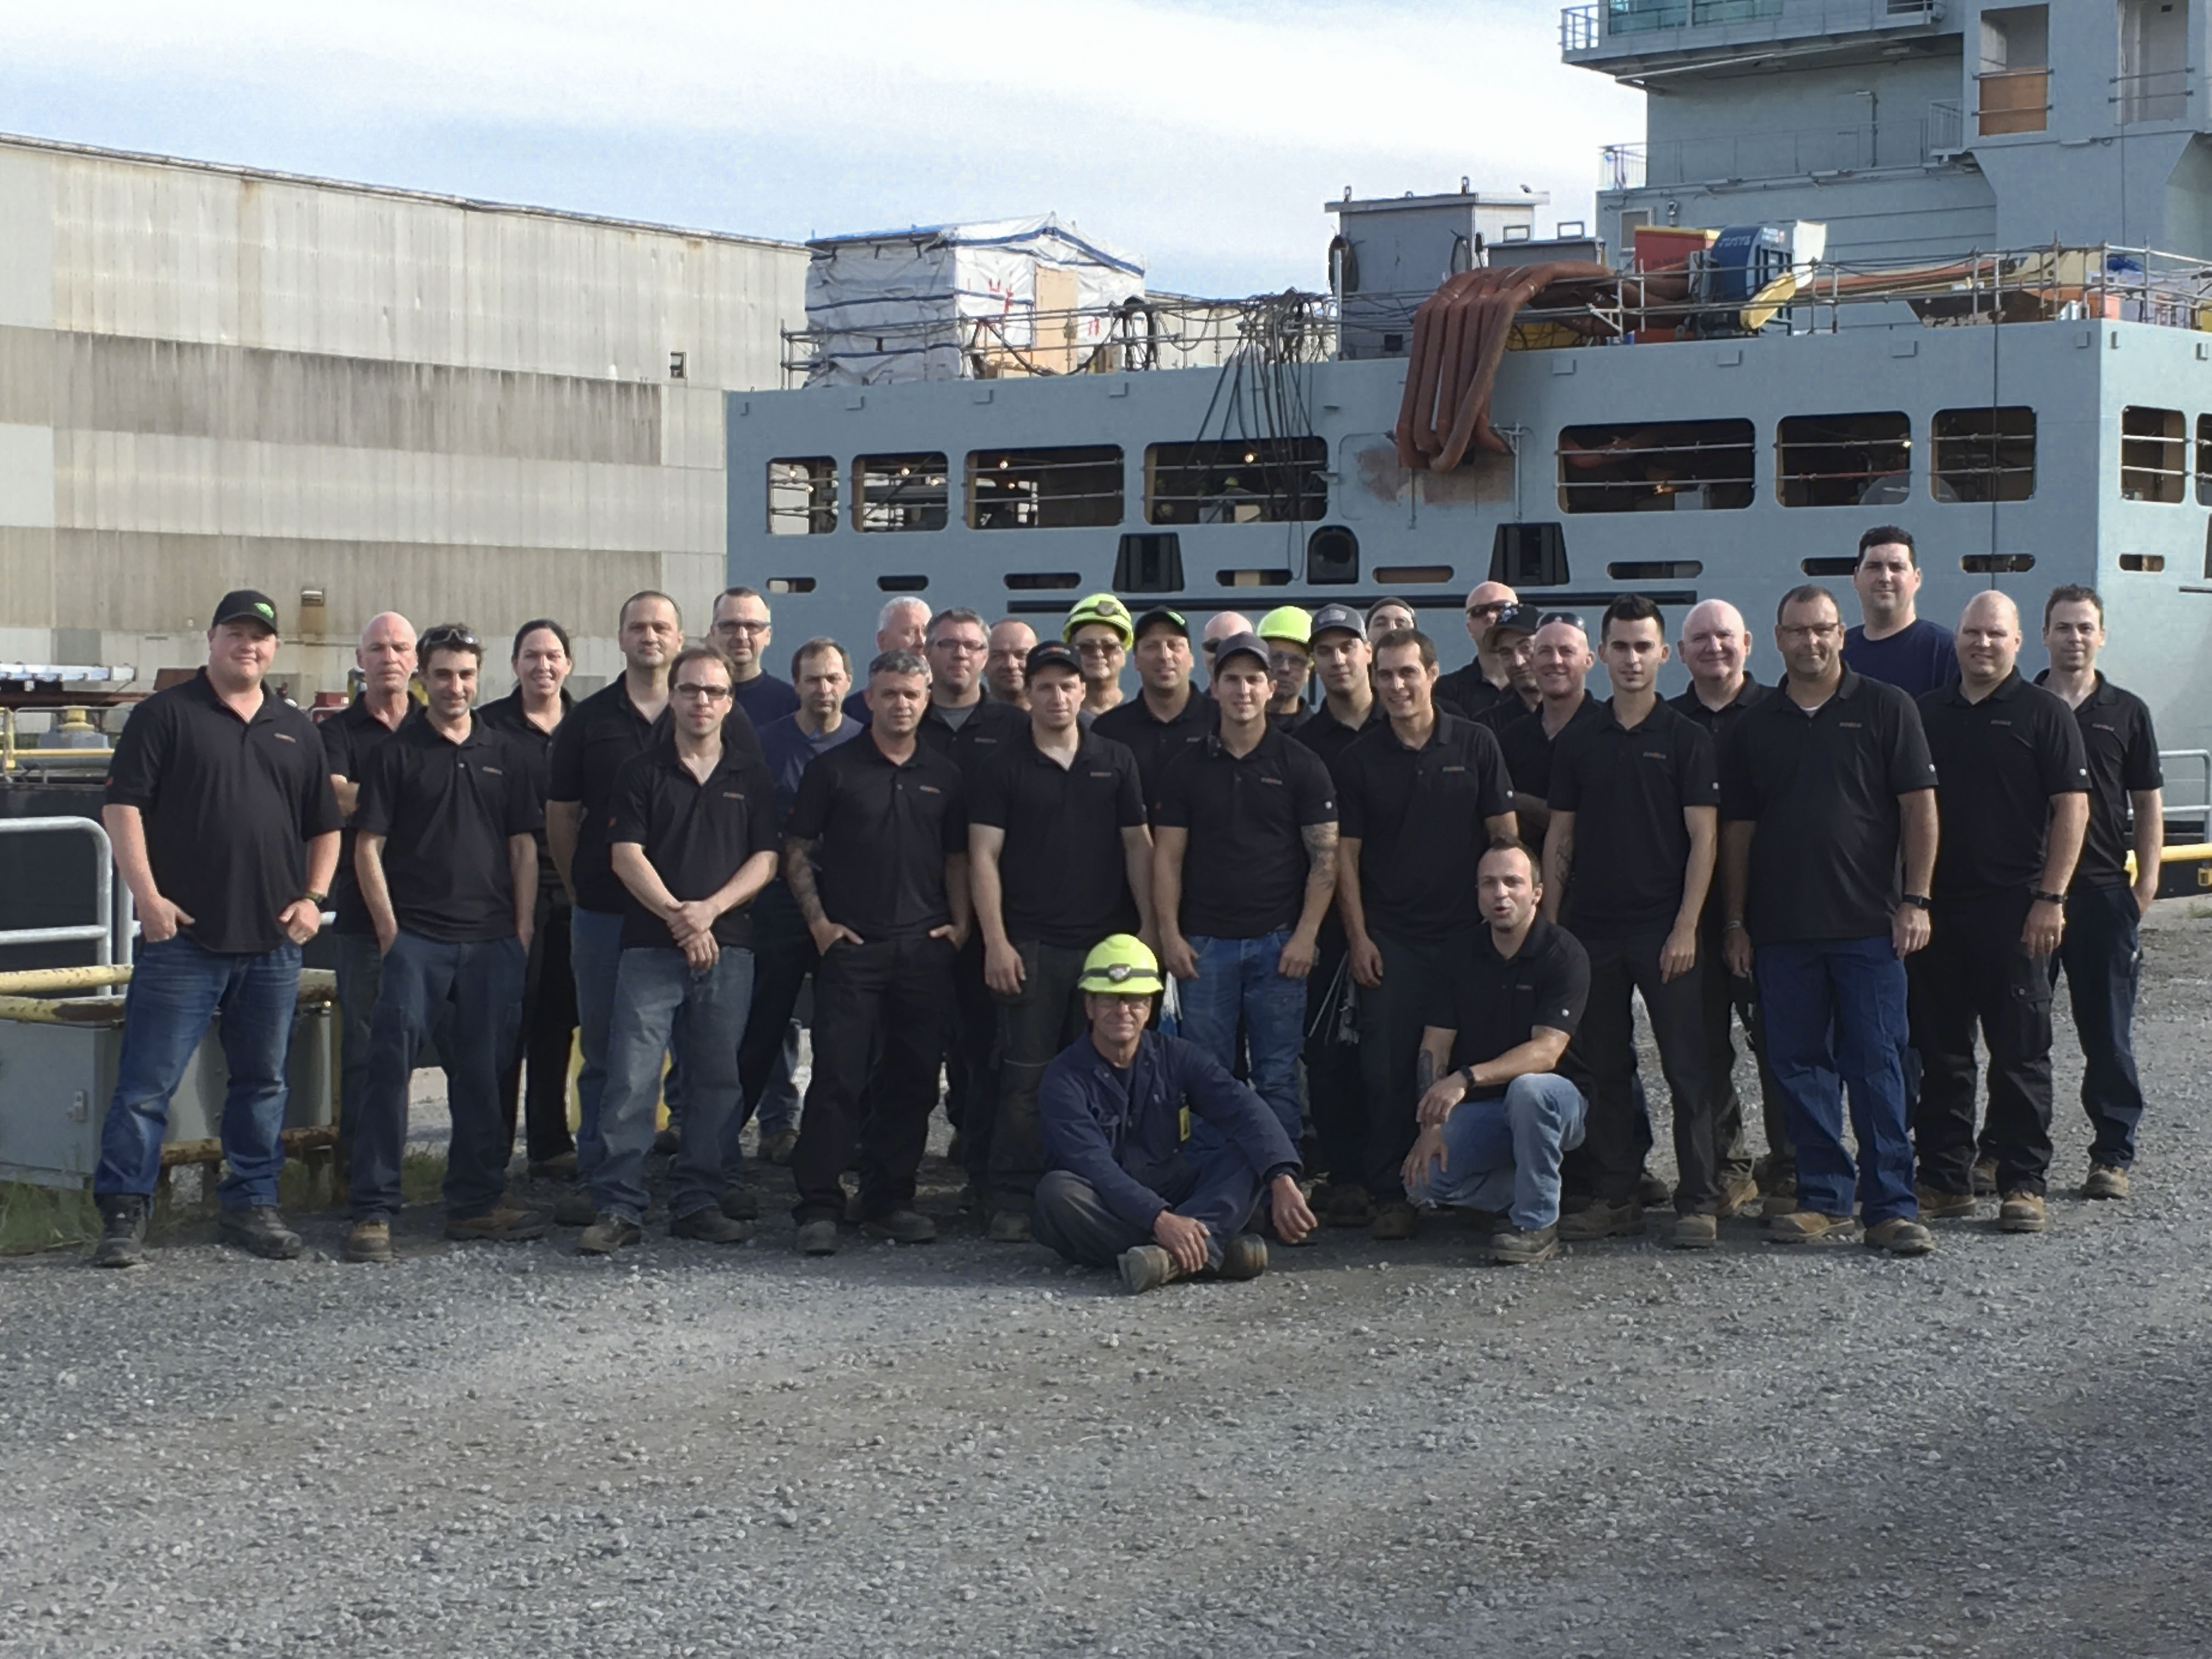 DAWCO congratulates its employees at the Davie shipyard